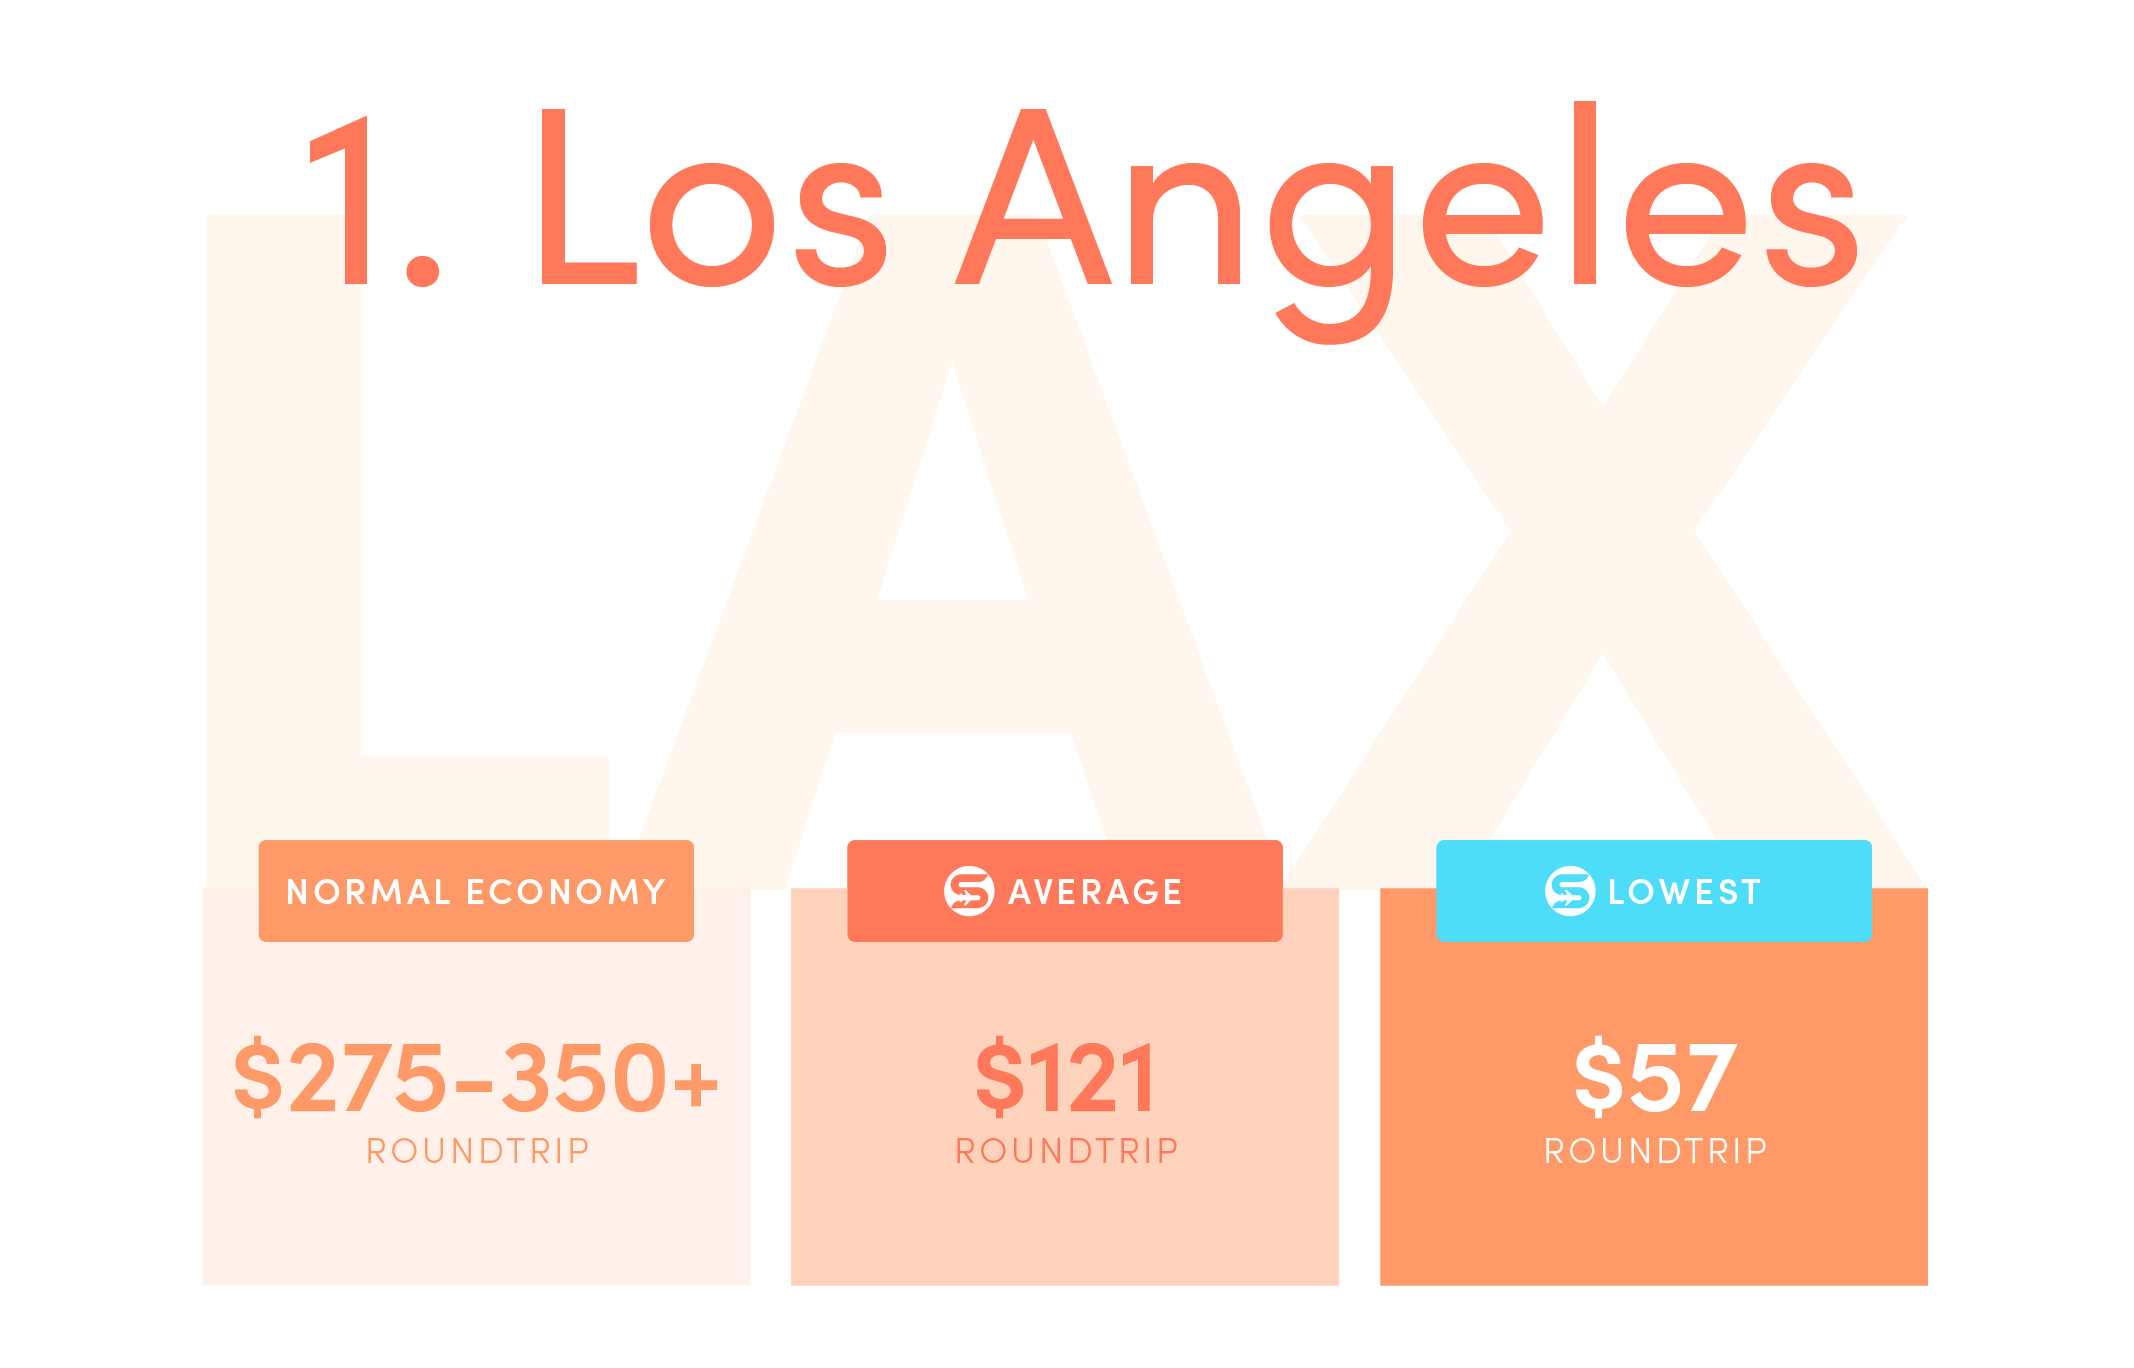 Los Angeles (LAX).Normal economy price from the US: $275-350+ roundtrip.Average Scott's Cheap Flights economy price: $121 roundtrip.Lowest Scott's Cheap Flights price in 2021: $57 roundtrip.